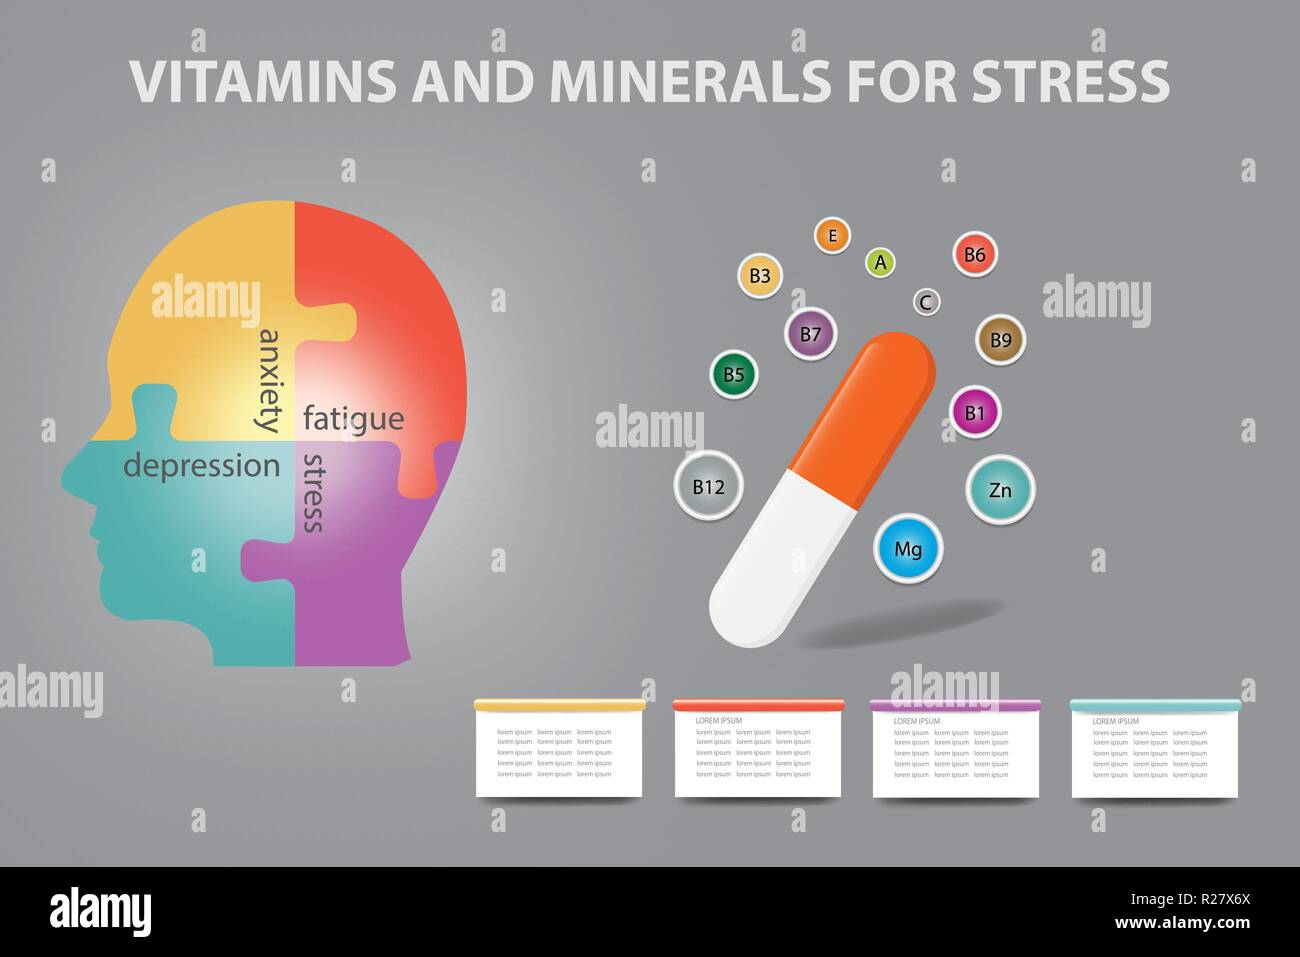 Anti stress vitamins and minerals infographic vector showing